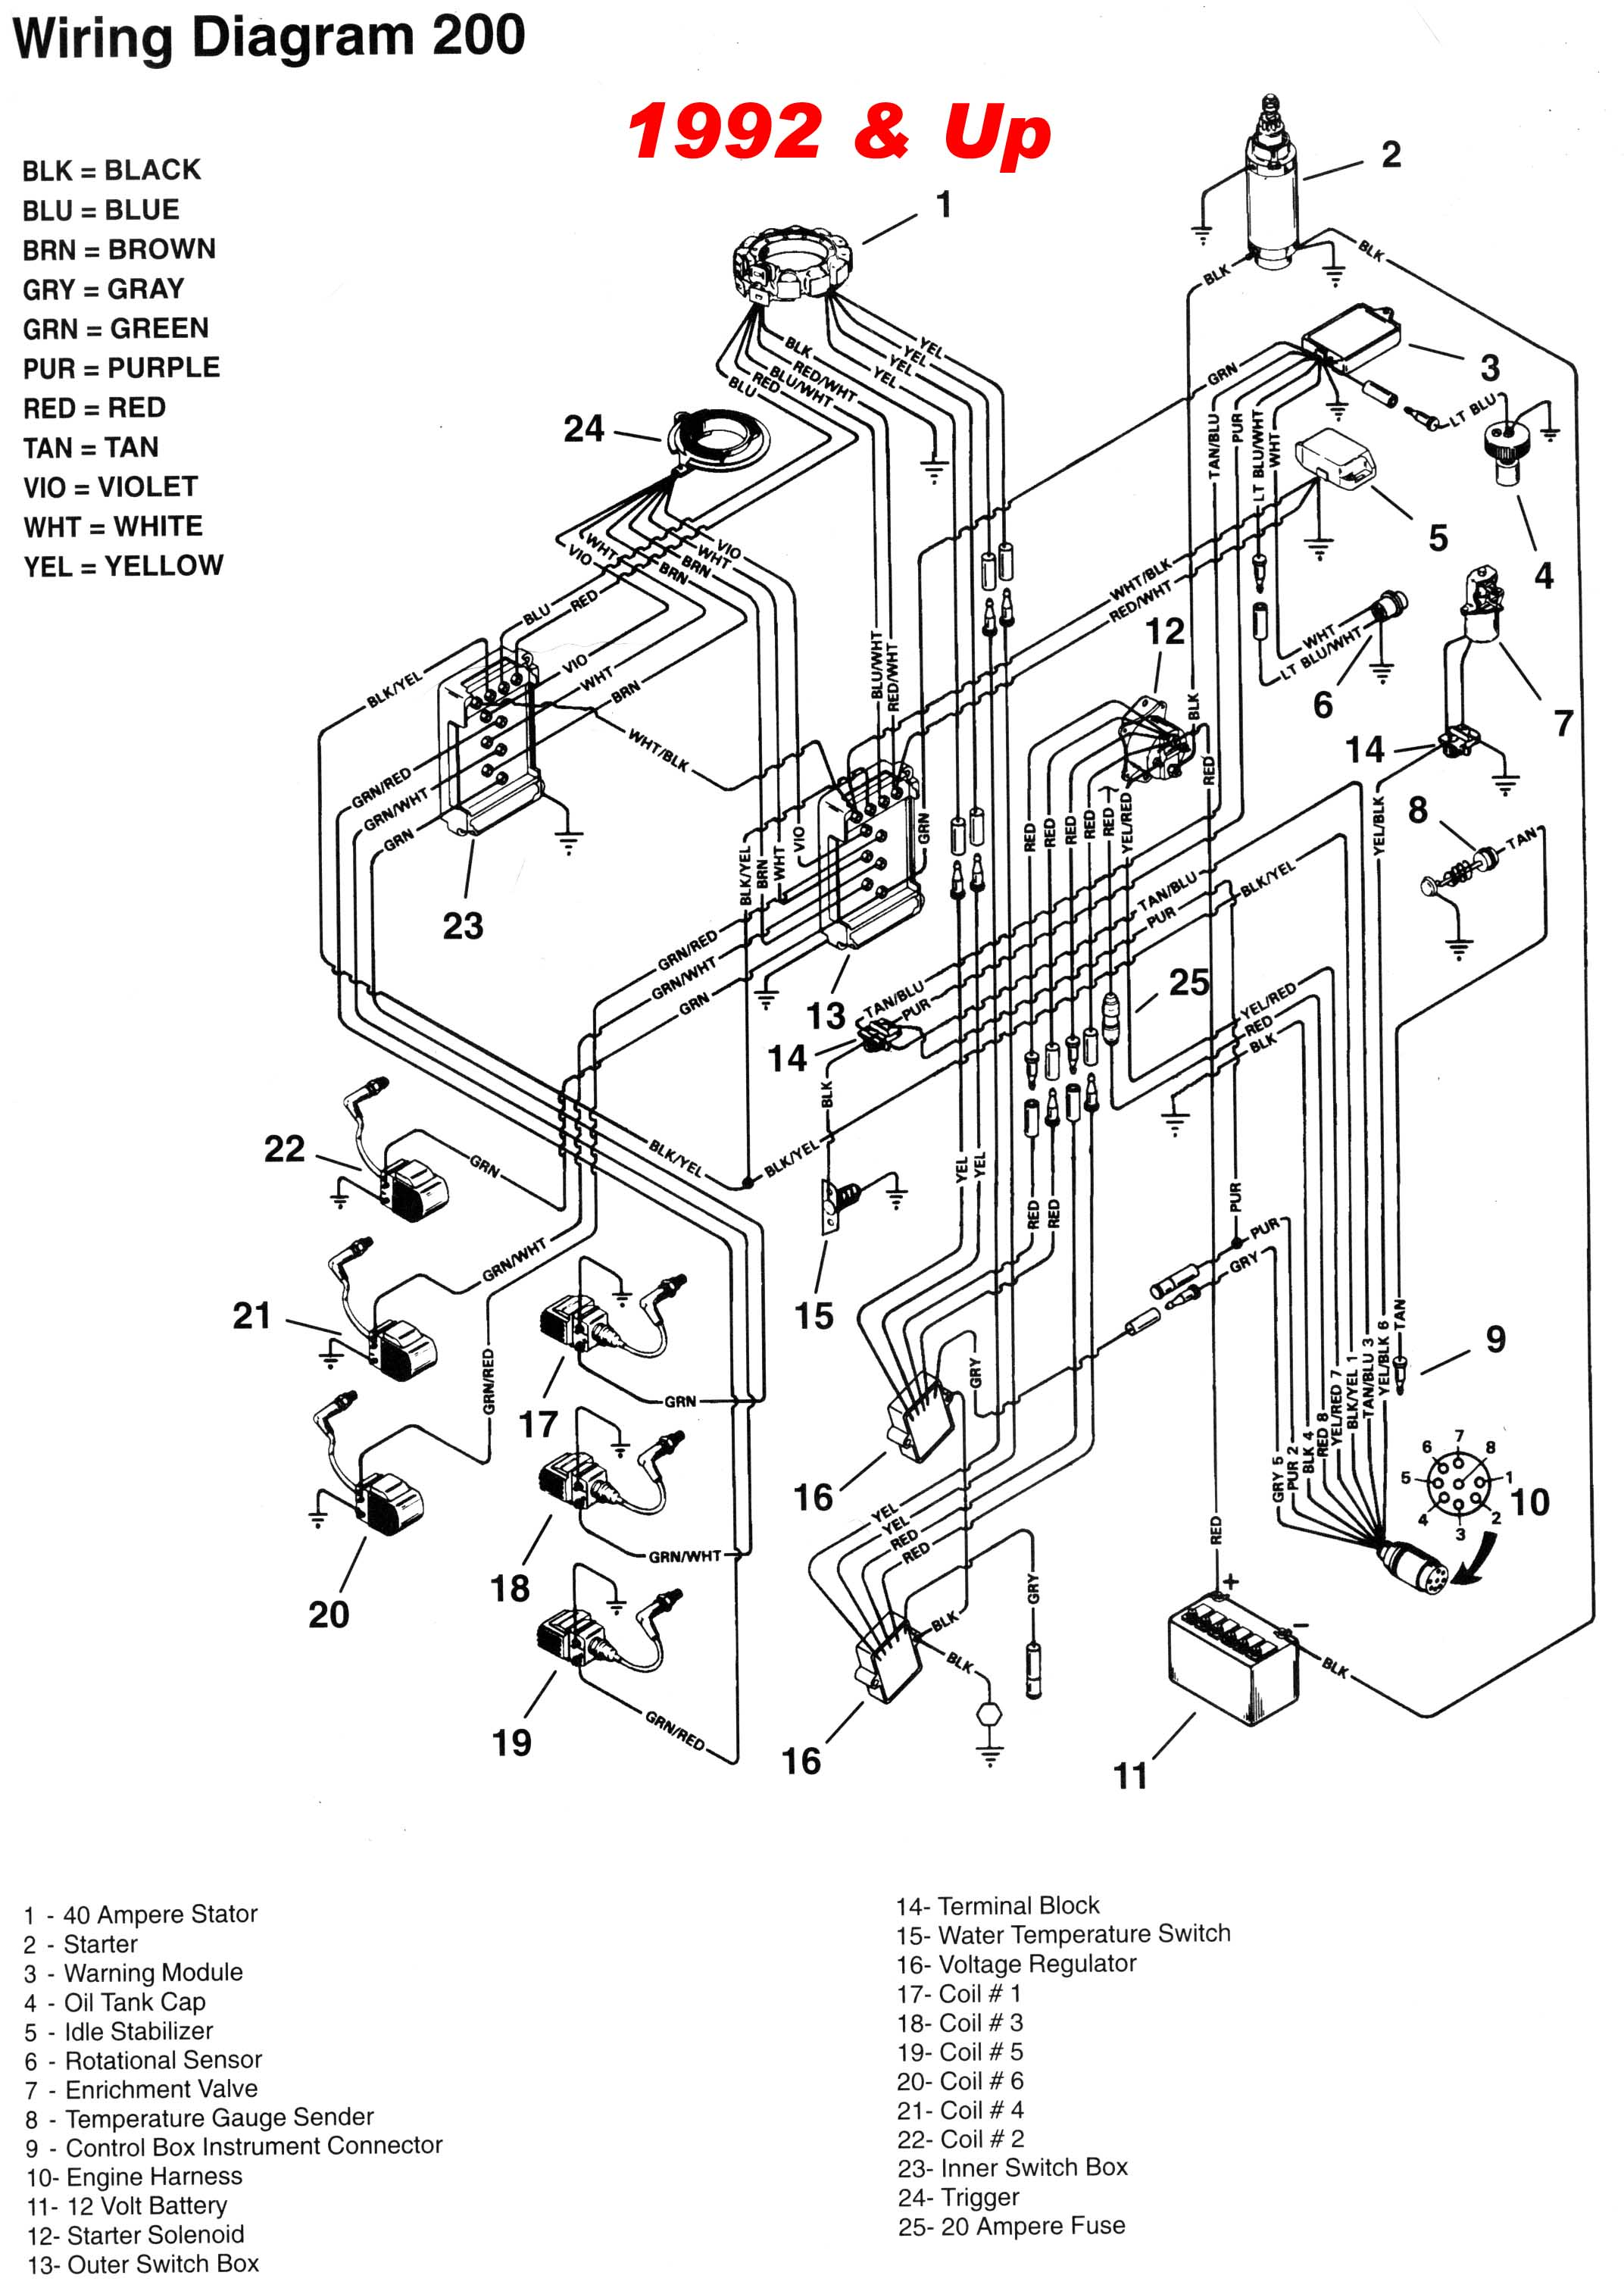 Mercury Outboard 2.5 and 3.0L V6 and Gearcase FAQ on leviton gfci wiring-diagram, ford f550 wiring-diagram, international 4300 wiring-diagram, honeywell aquastat wiring-diagram, sears craftsman wiring-diagram, isuzu npr wiring-diagram, emg pickups wiring-diagram, trim sender wiring-diagram, voltmeter wiring-diagram, peterbilt 387 wiring-diagram, leviton dimmer wiring-diagram, sea ray wiring-diagram, ford e-150 wiring-diagram, swm splitter wiring-diagram, lutron dimmer wiring-diagram, chevrolet colorado wiring-diagram, farmall cub wiring-diagram, gibson humbucker wiring-diagram, klipsch promedia 2.1 wiring-diagram, mercedes-benz wiring-diagram,